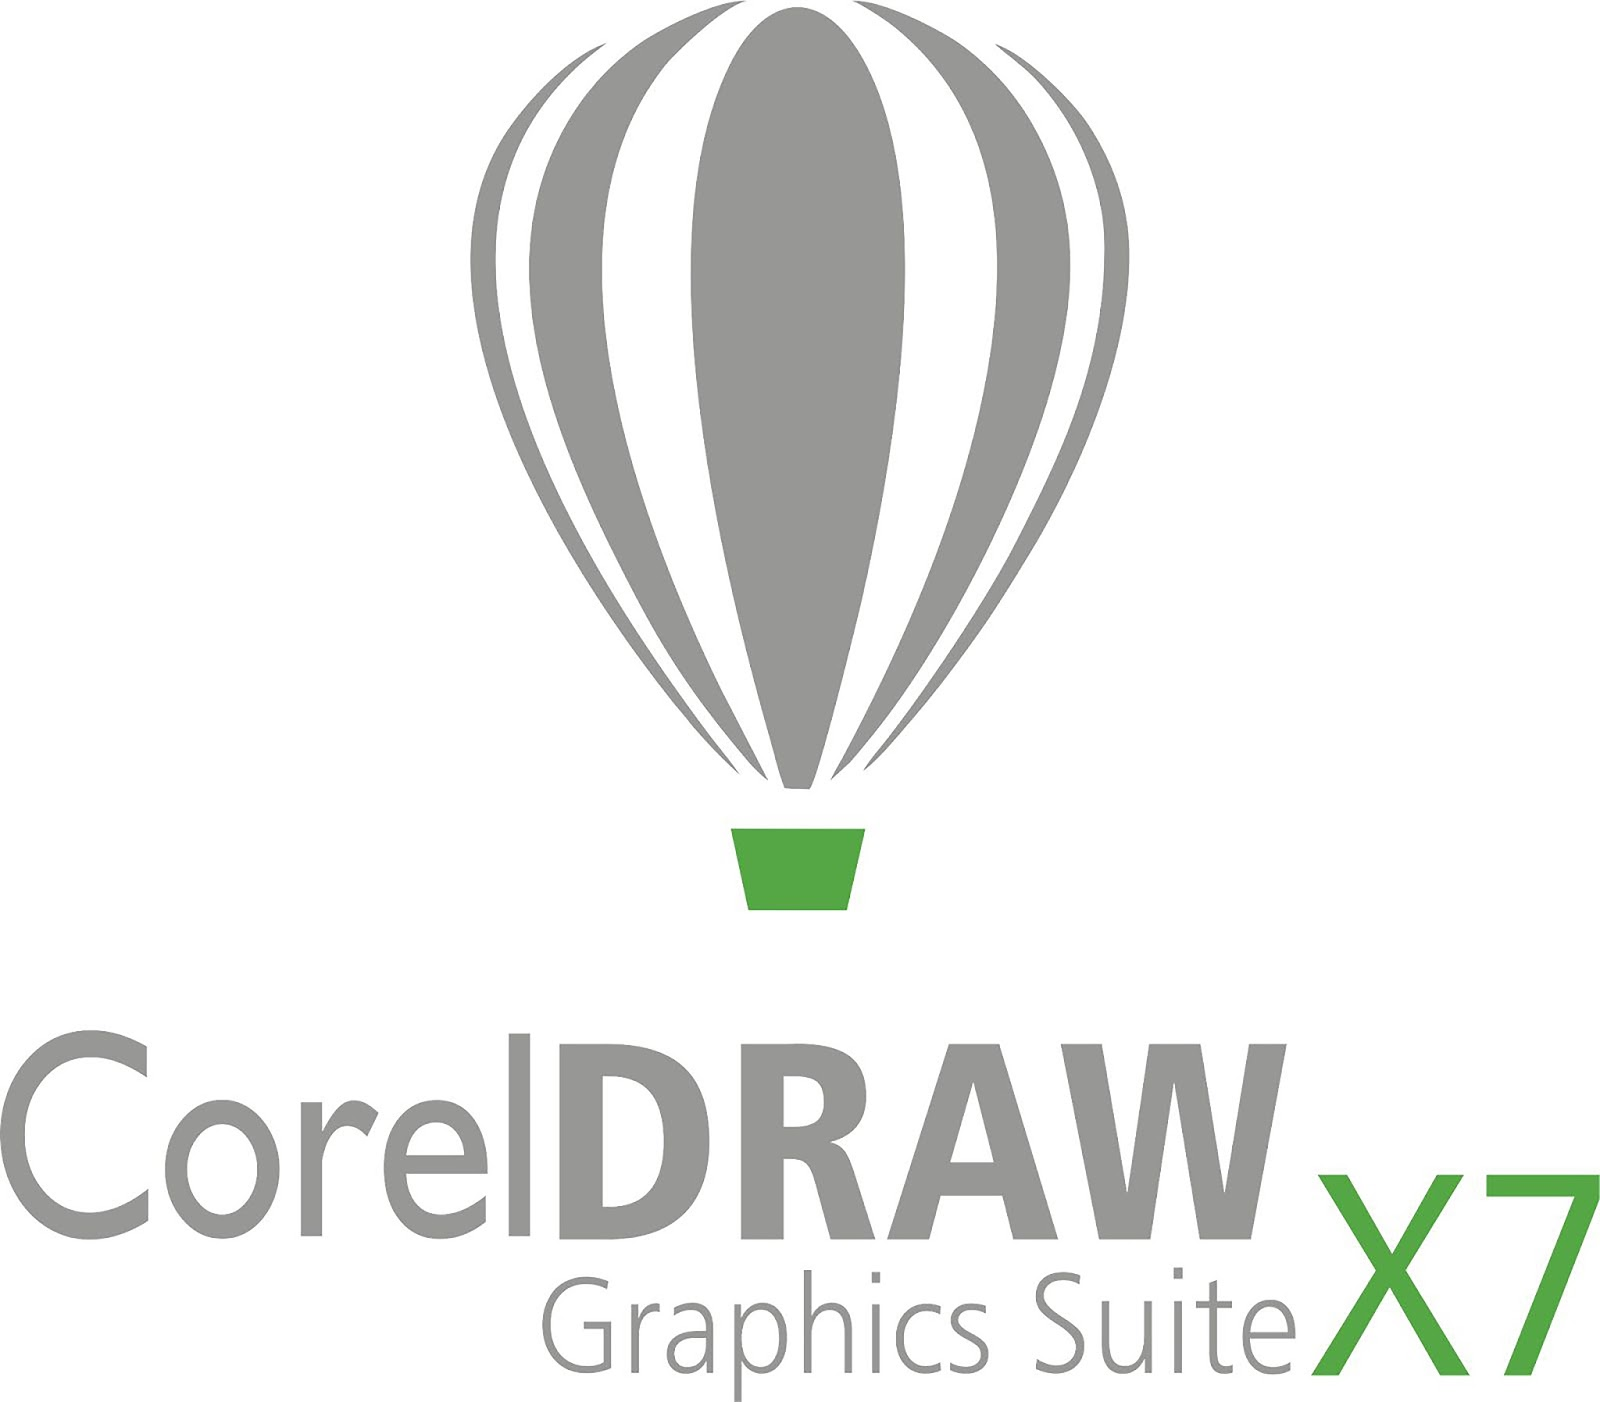 Corel draw version - After Effects Cc 2017 Maxresdefault 768x432 Now Switching To An Older Version Of Coreldraw